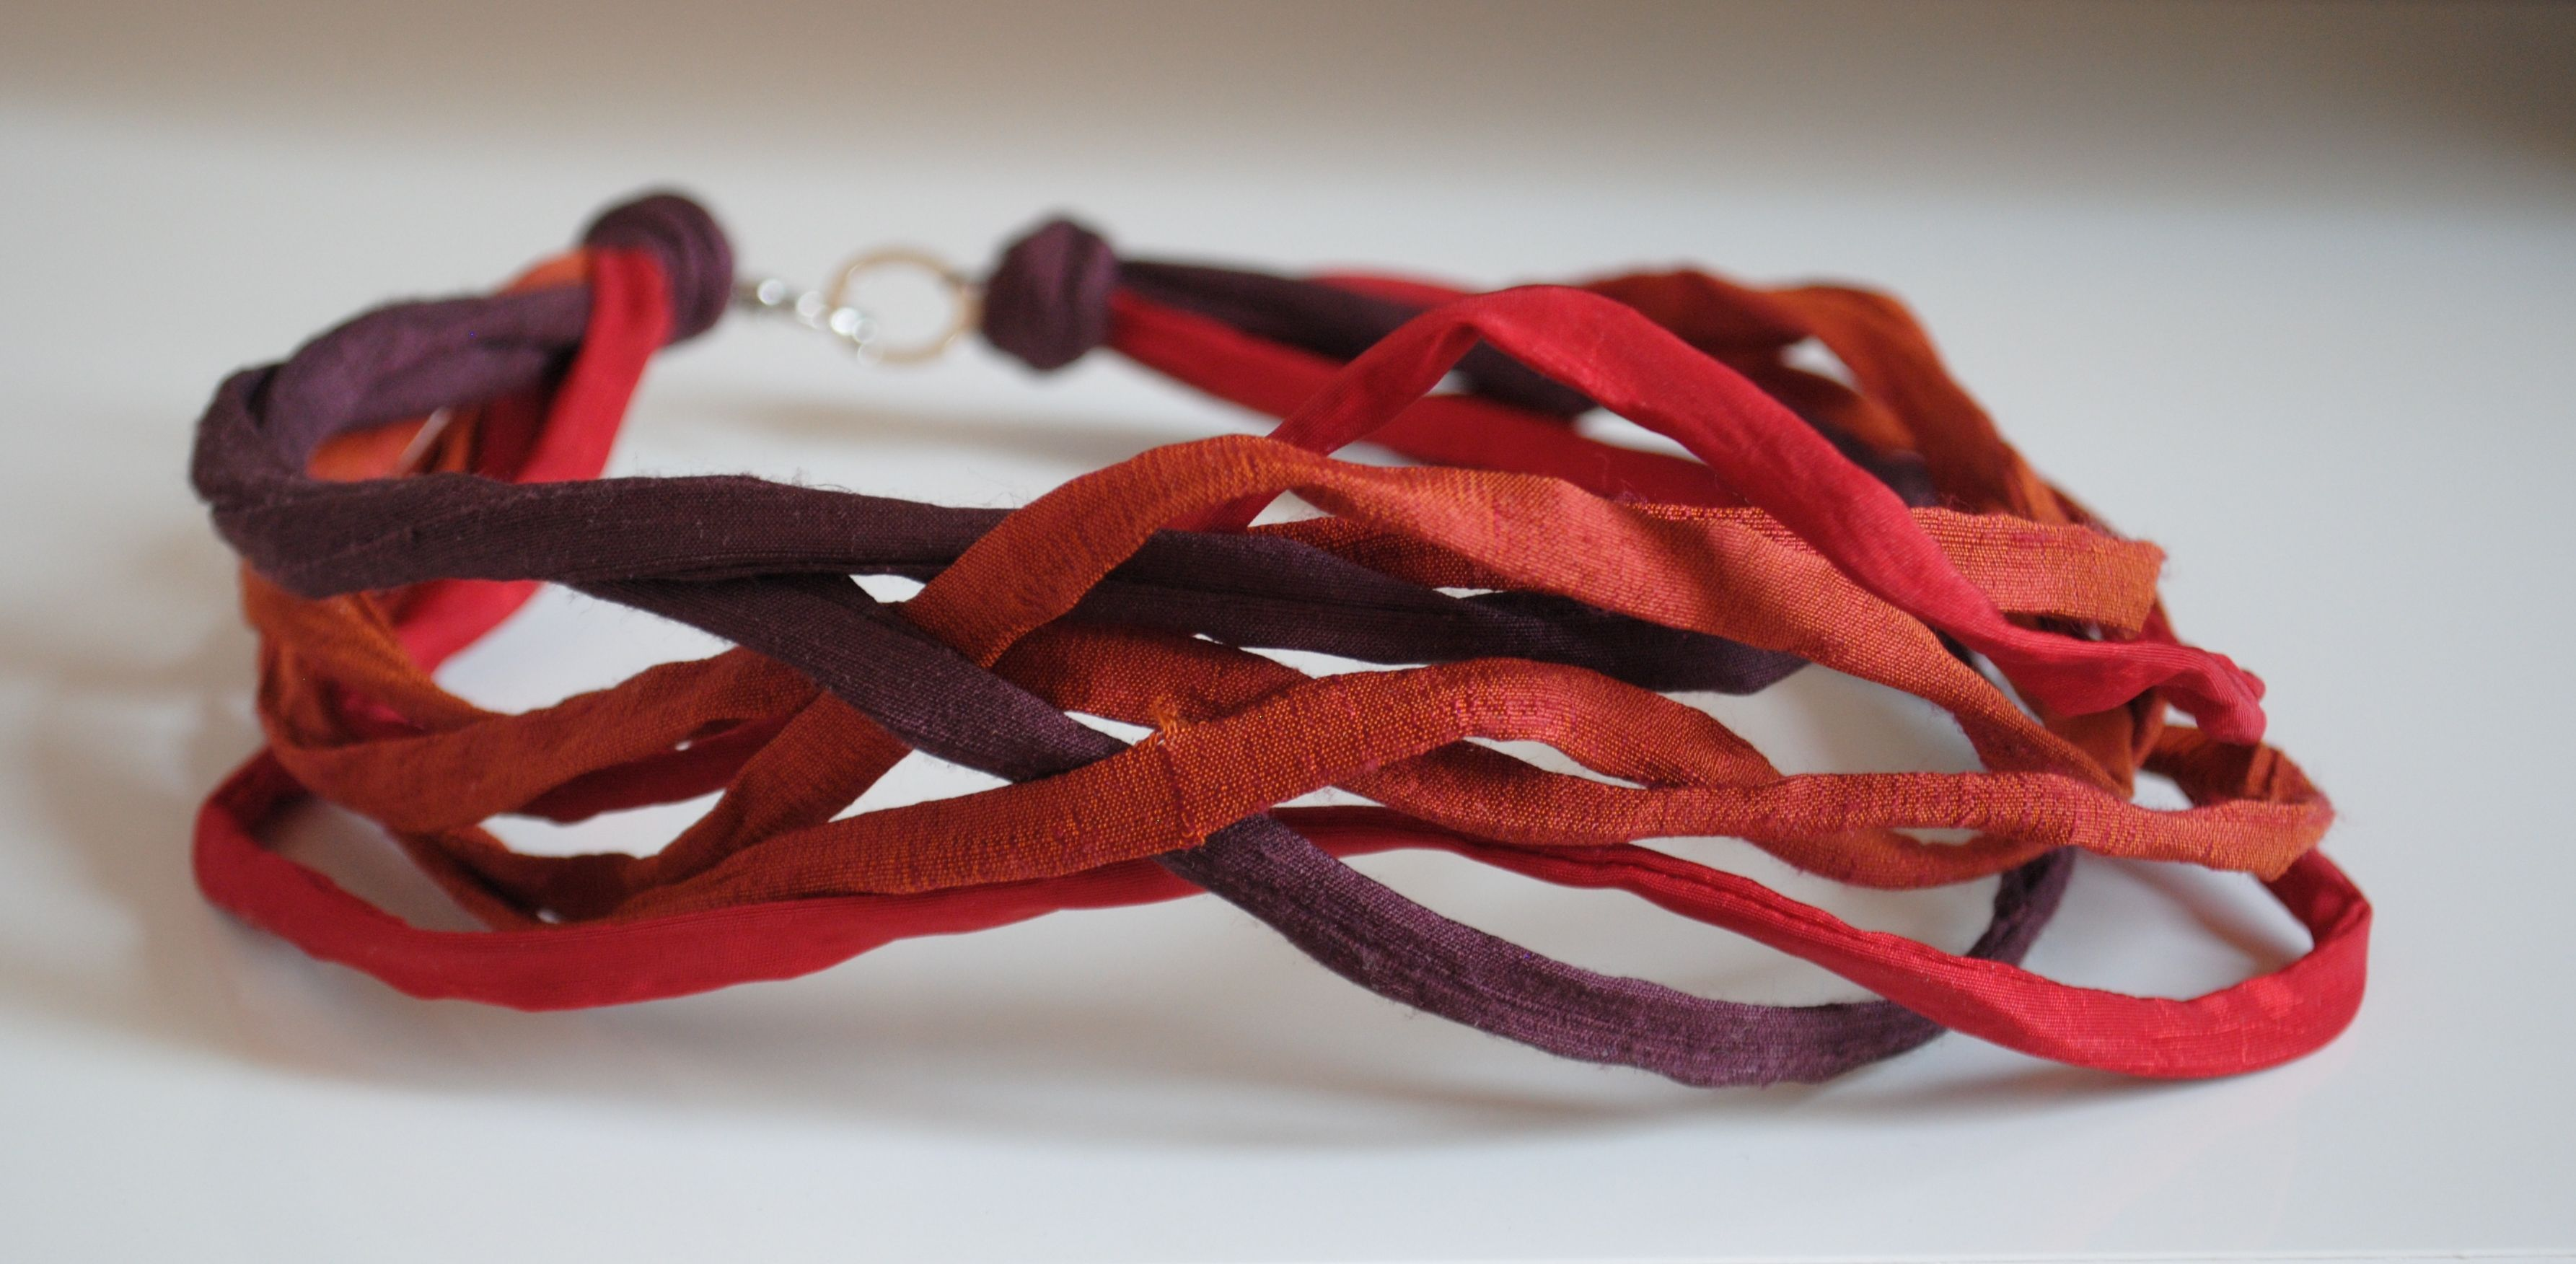 Multicoloured Strands - Material Atelier Necklace http://www.materialatelier.com